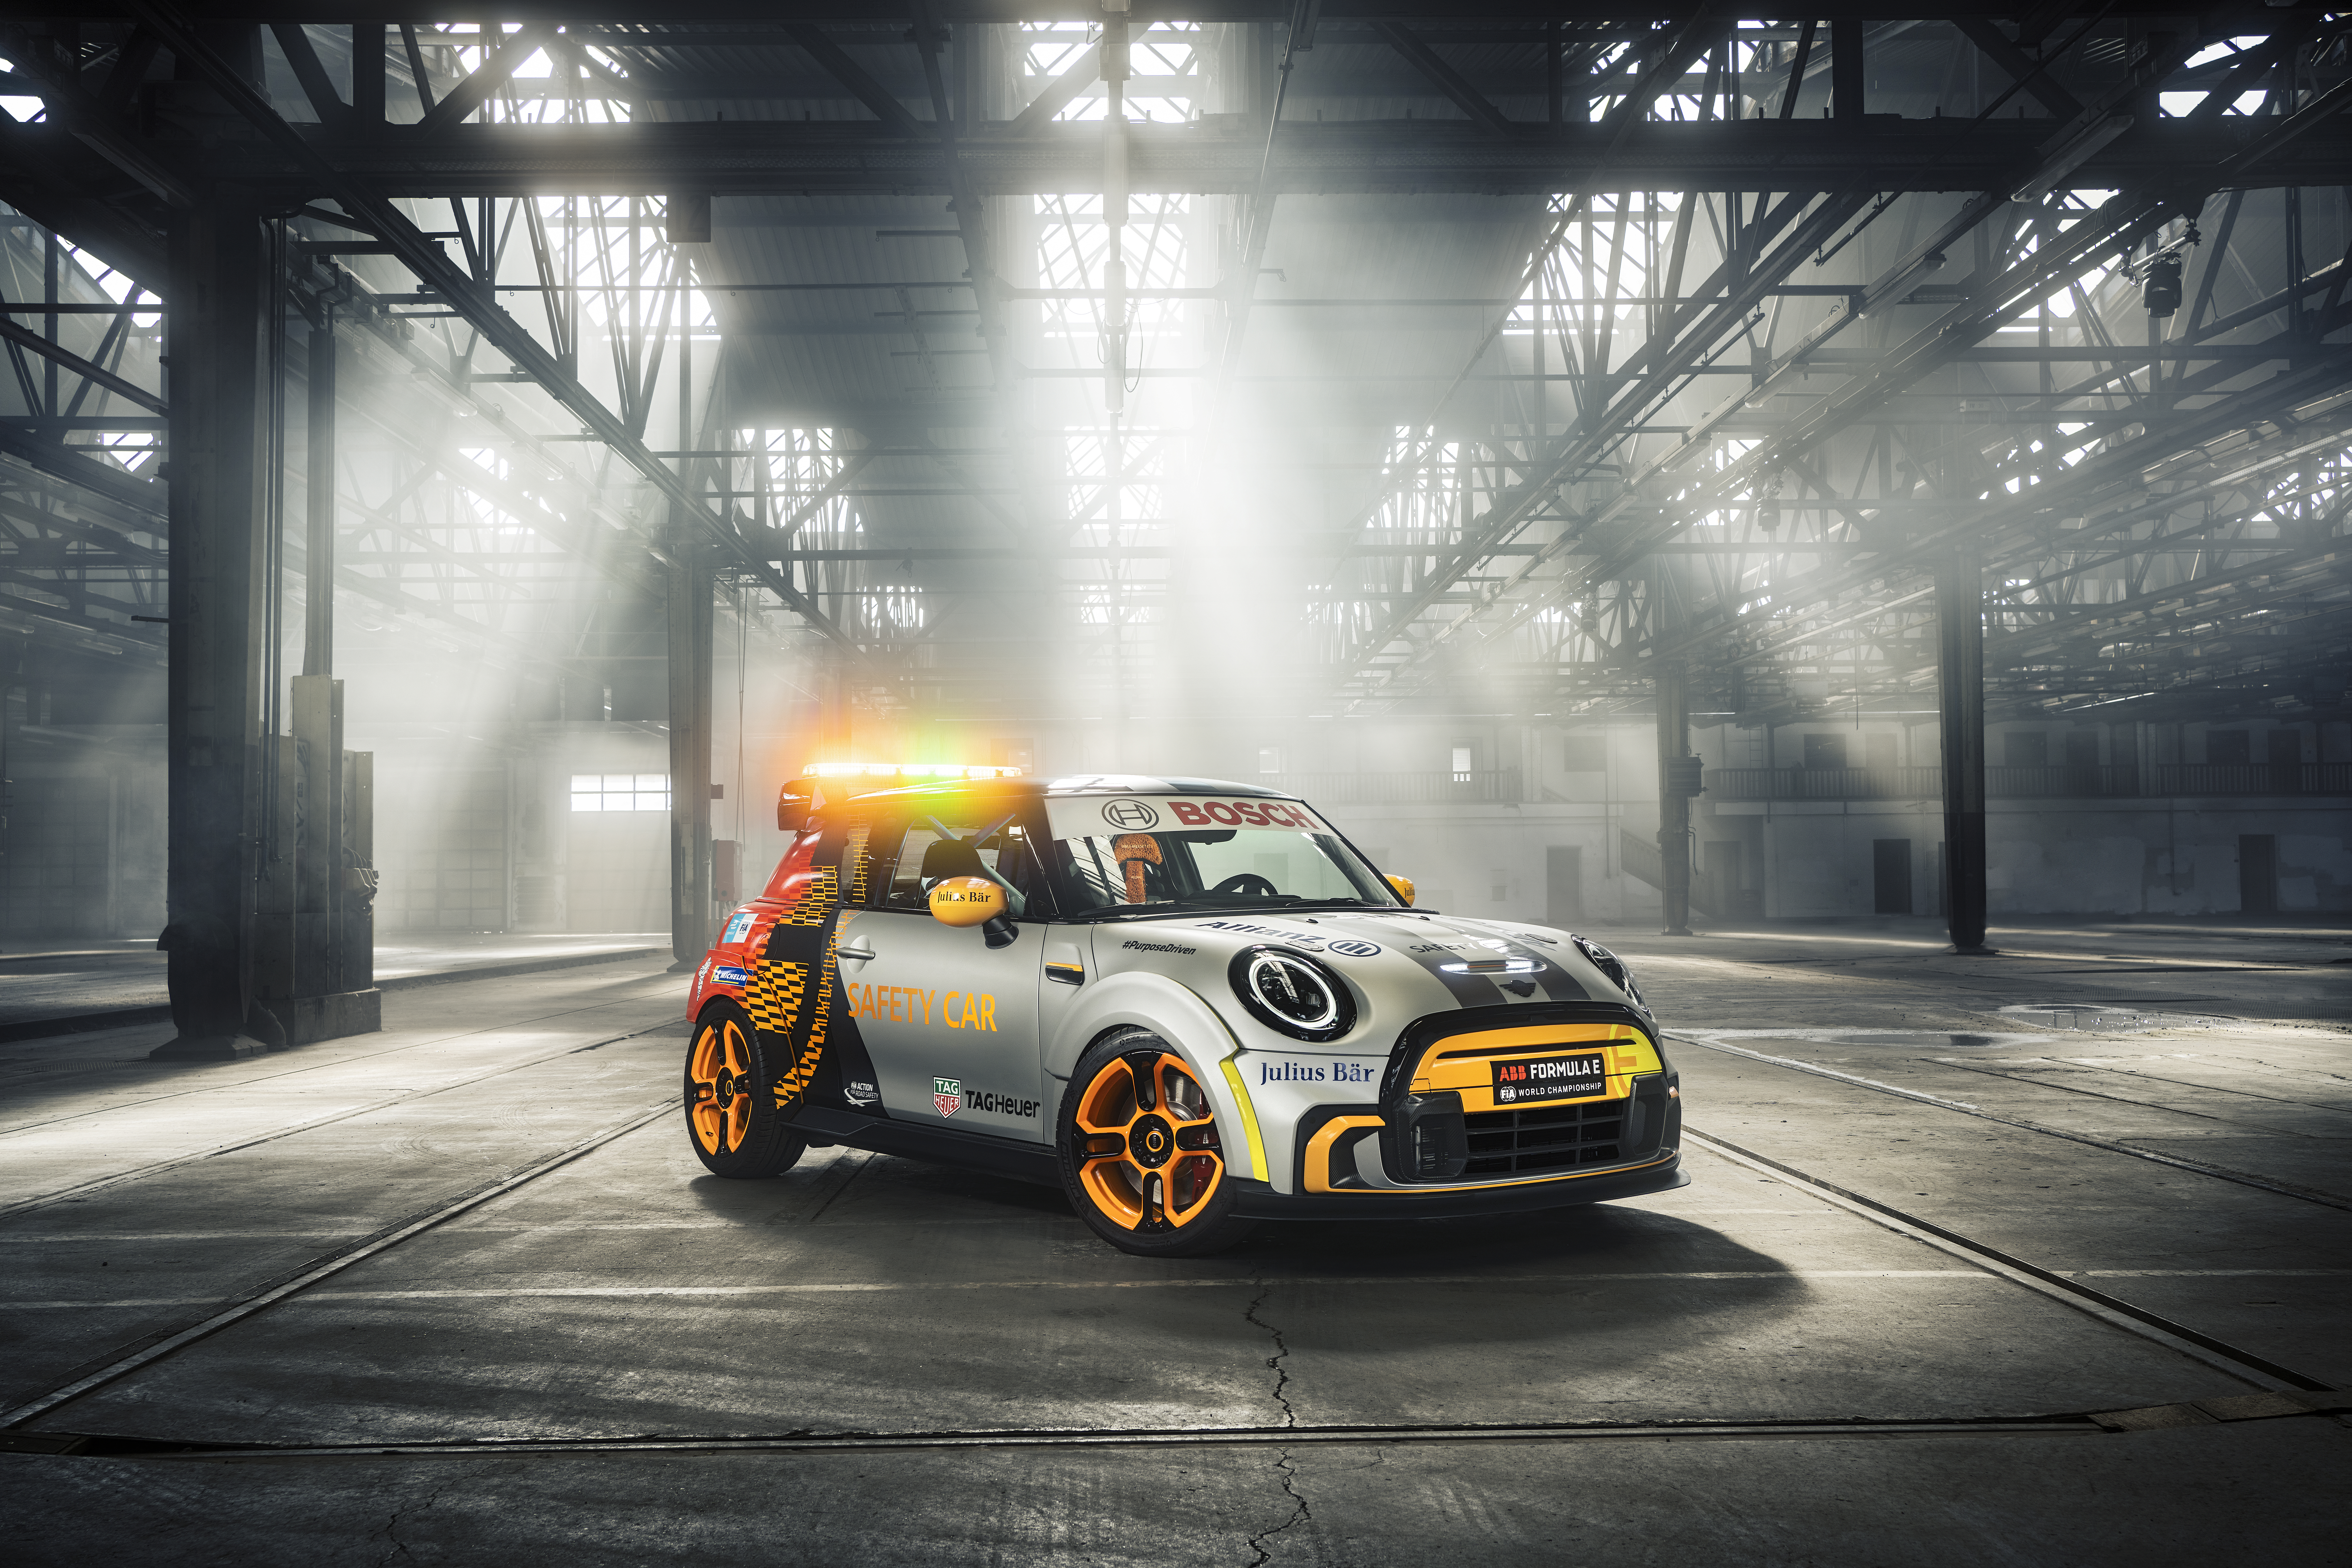 The MINI Electric Pacesetter inspired by John Cooper Works. The first electric MINI as a FIA Formula E Safety Car.